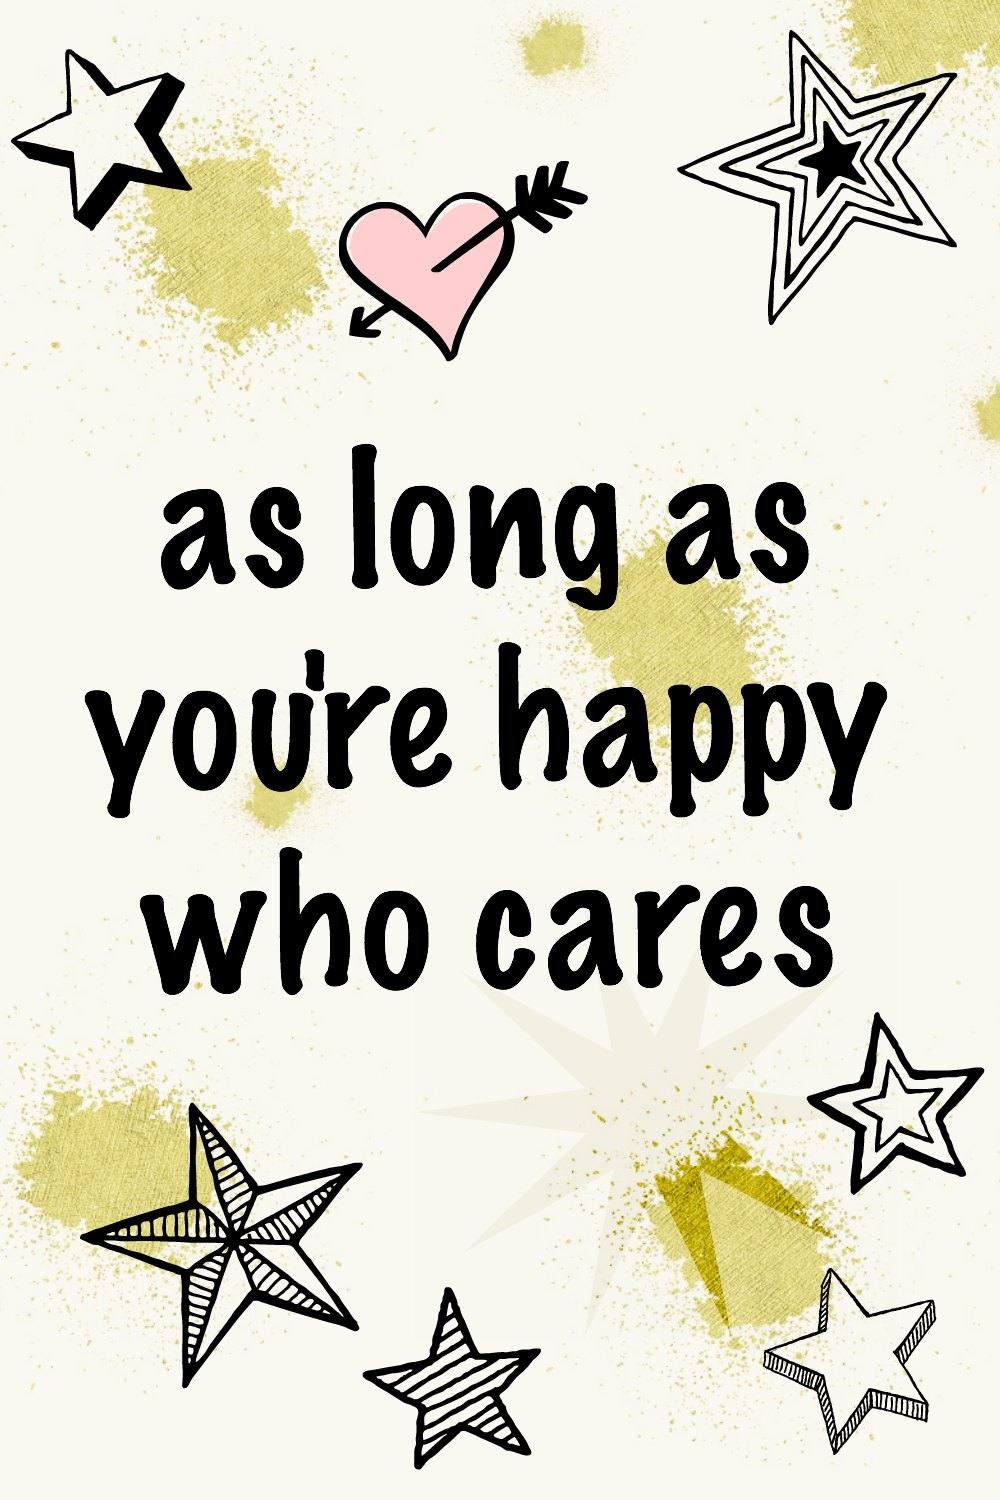 As long as you're happy, who cares quote. Happiness quotes #quotes #behappy #happiness